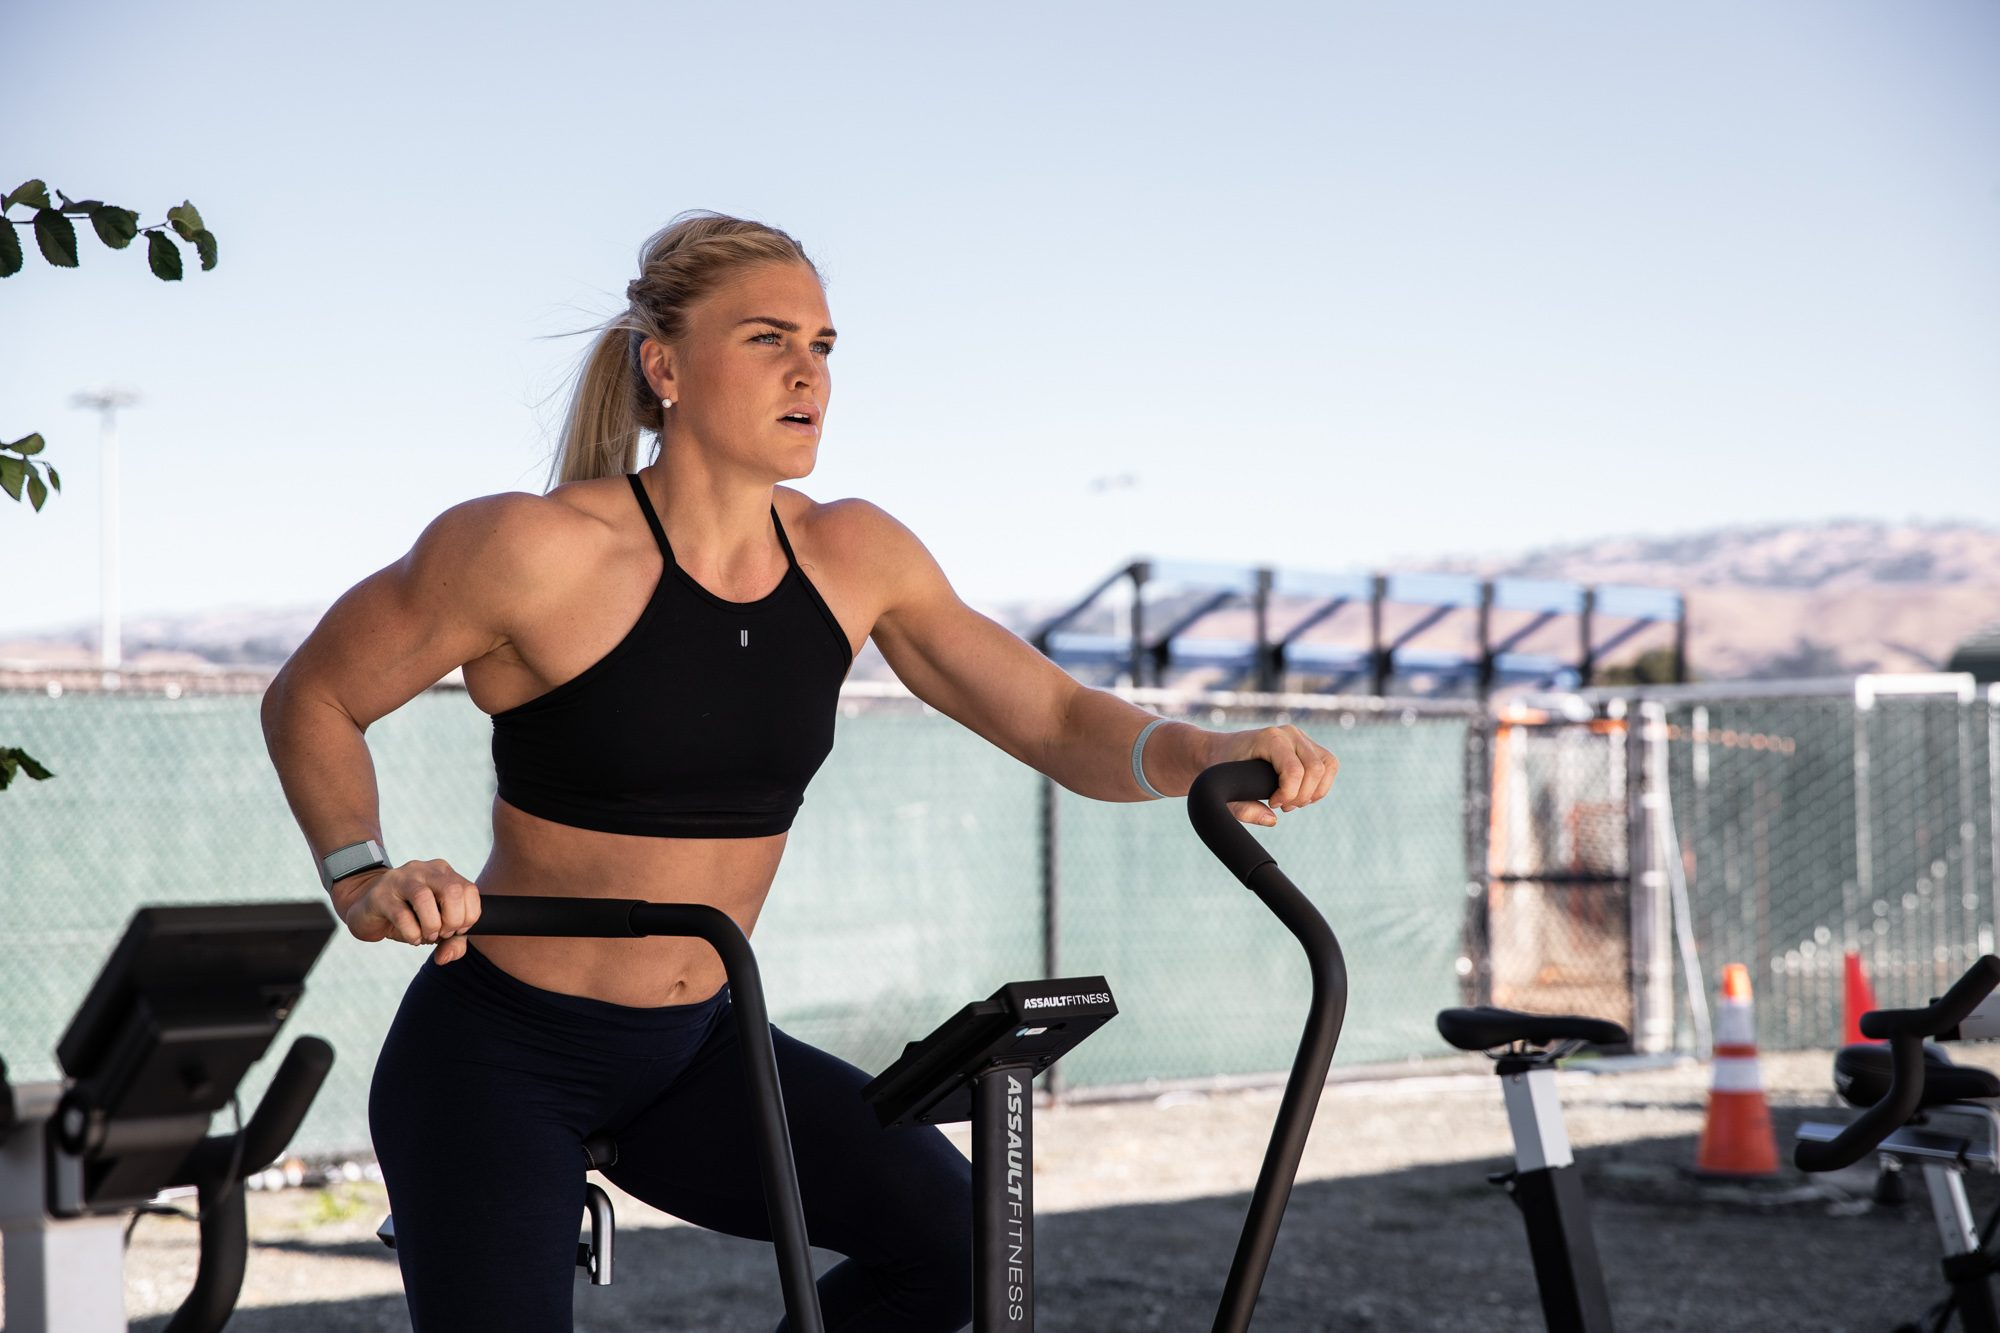 Davidsdottir Face Of Whoop Digital Ad Campaign Know Yourself Morning Chalk Up